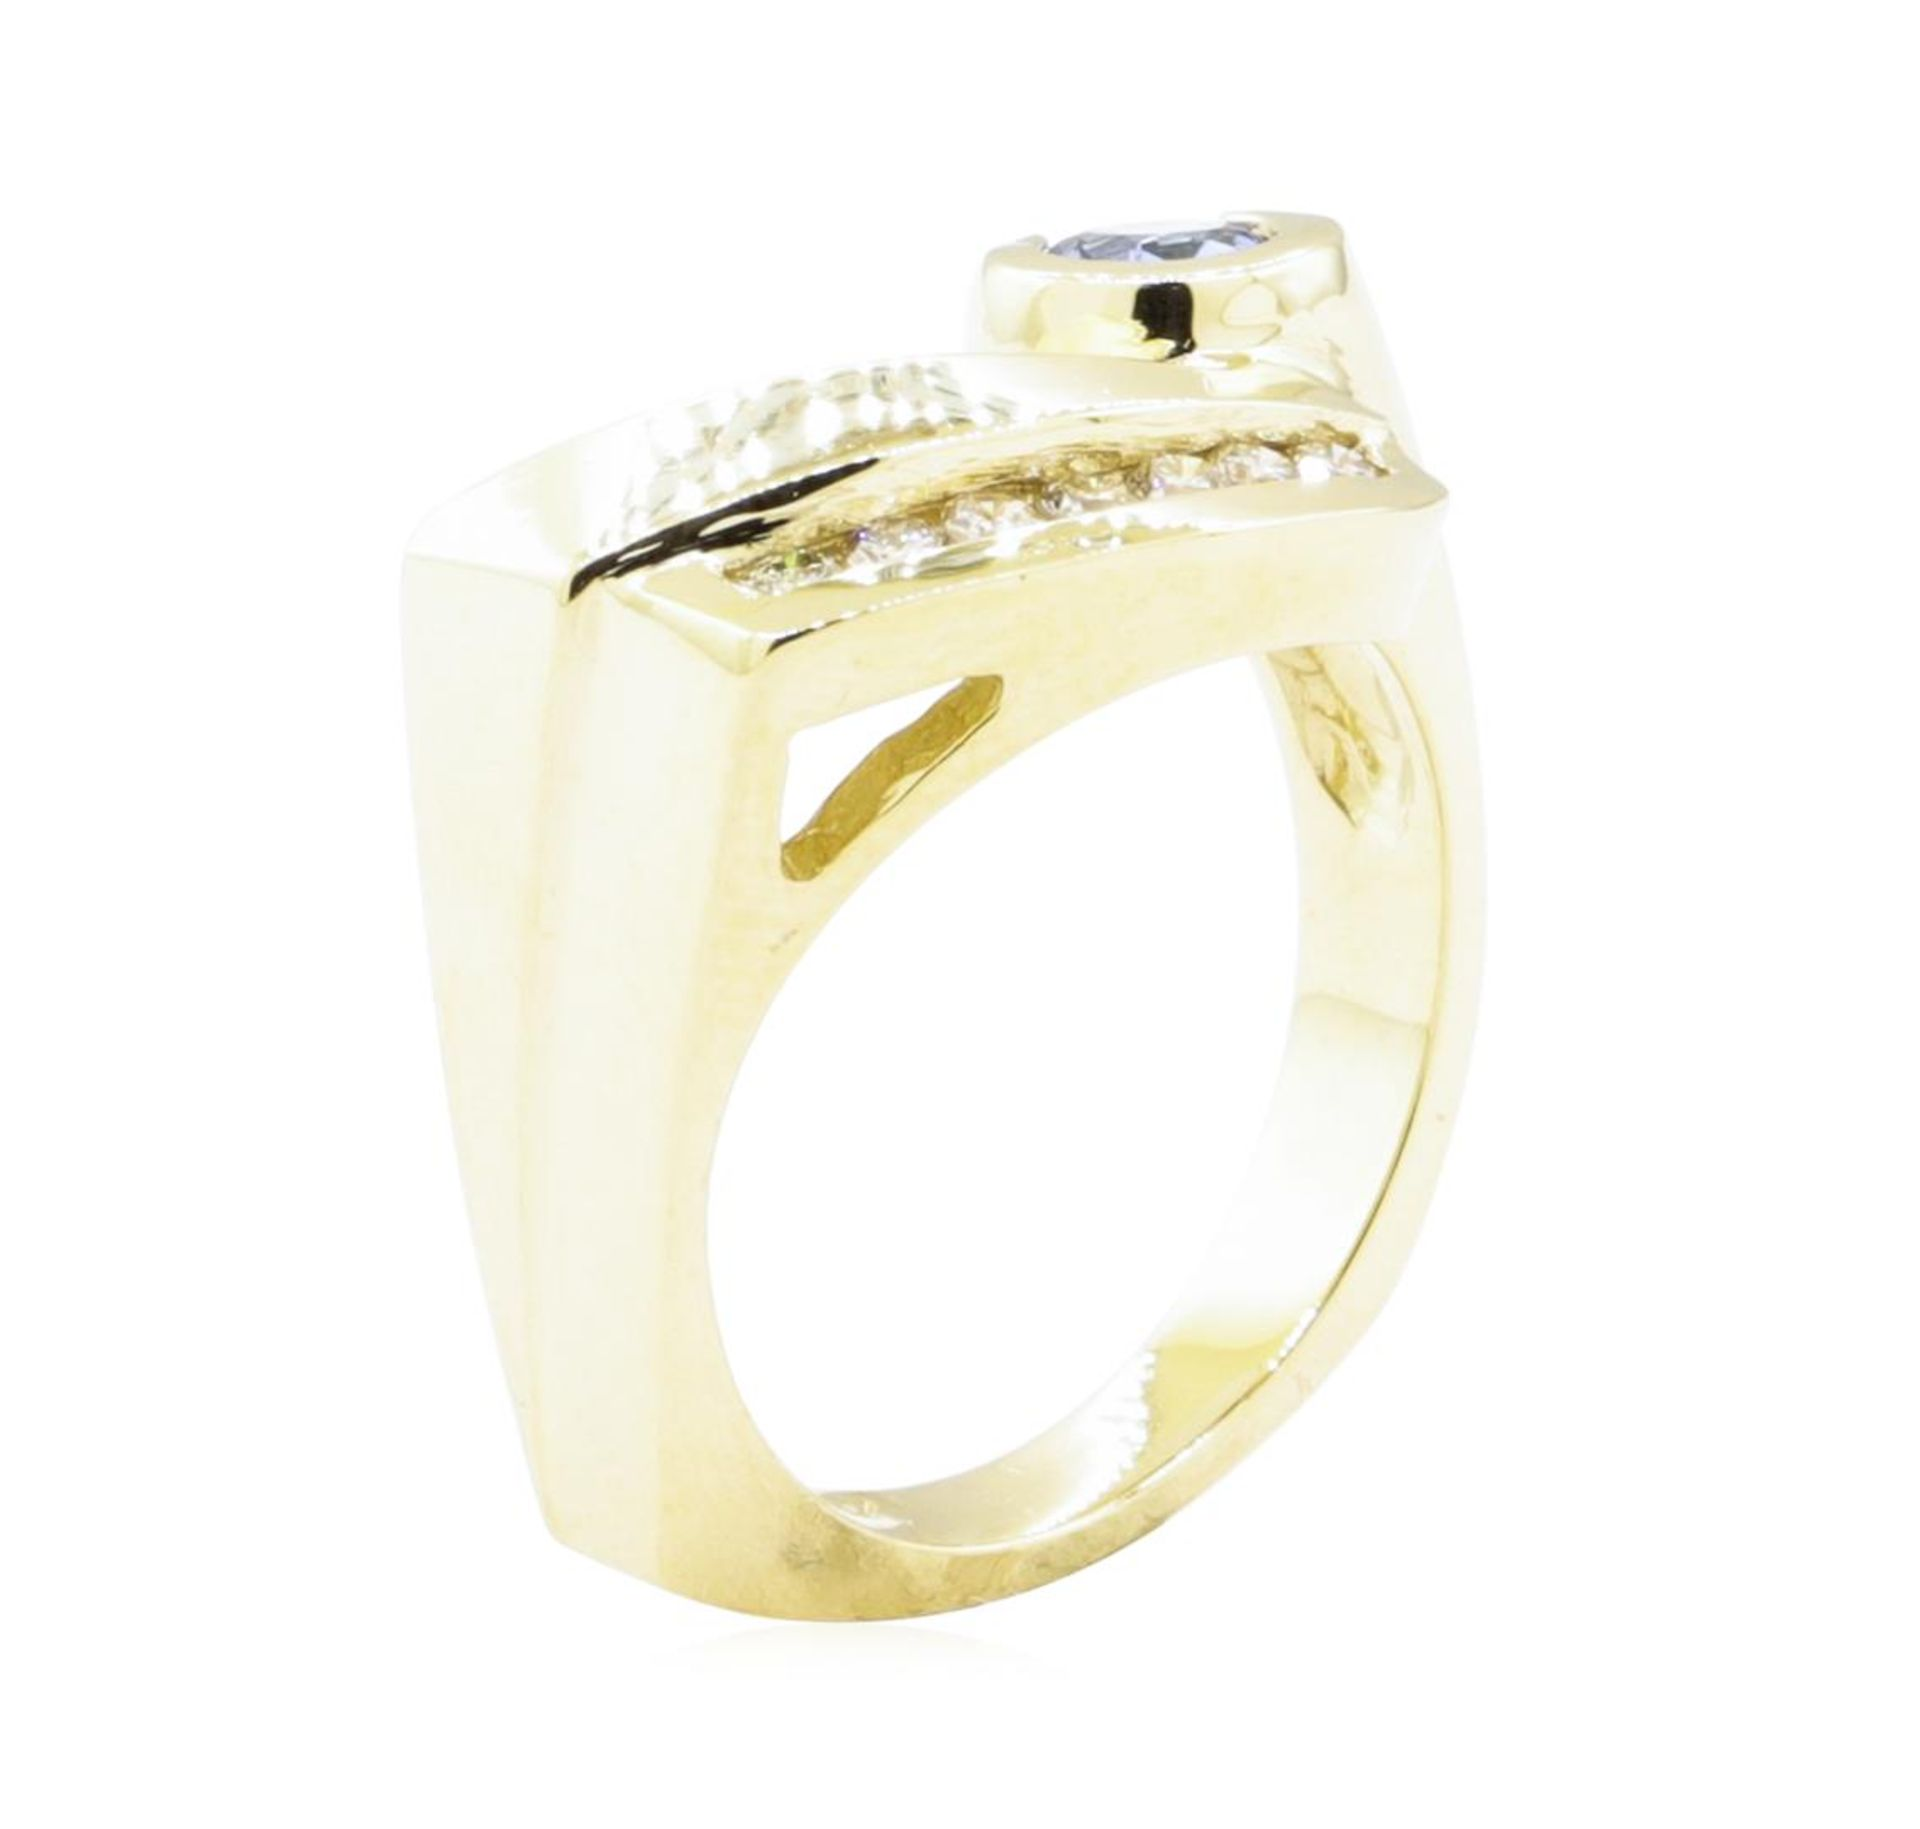 0.55ctw Blue Sapphire and Diamond Ring - 14KT Yellow Gold - Image 4 of 4